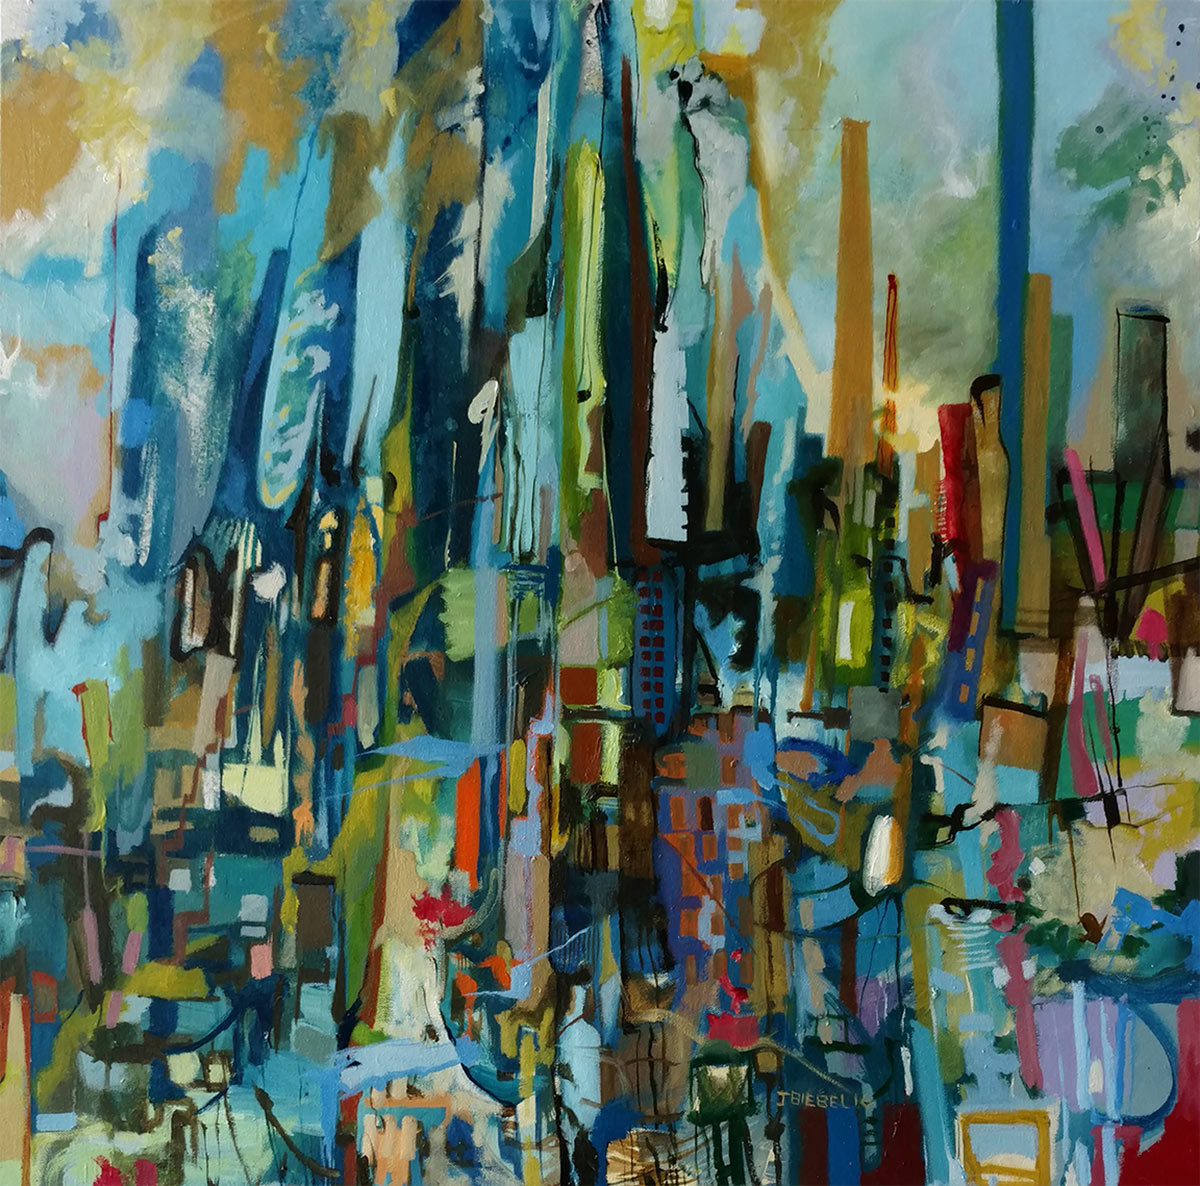 City of Fog, Oil on canvas, 30 x 30 inches, 2016.